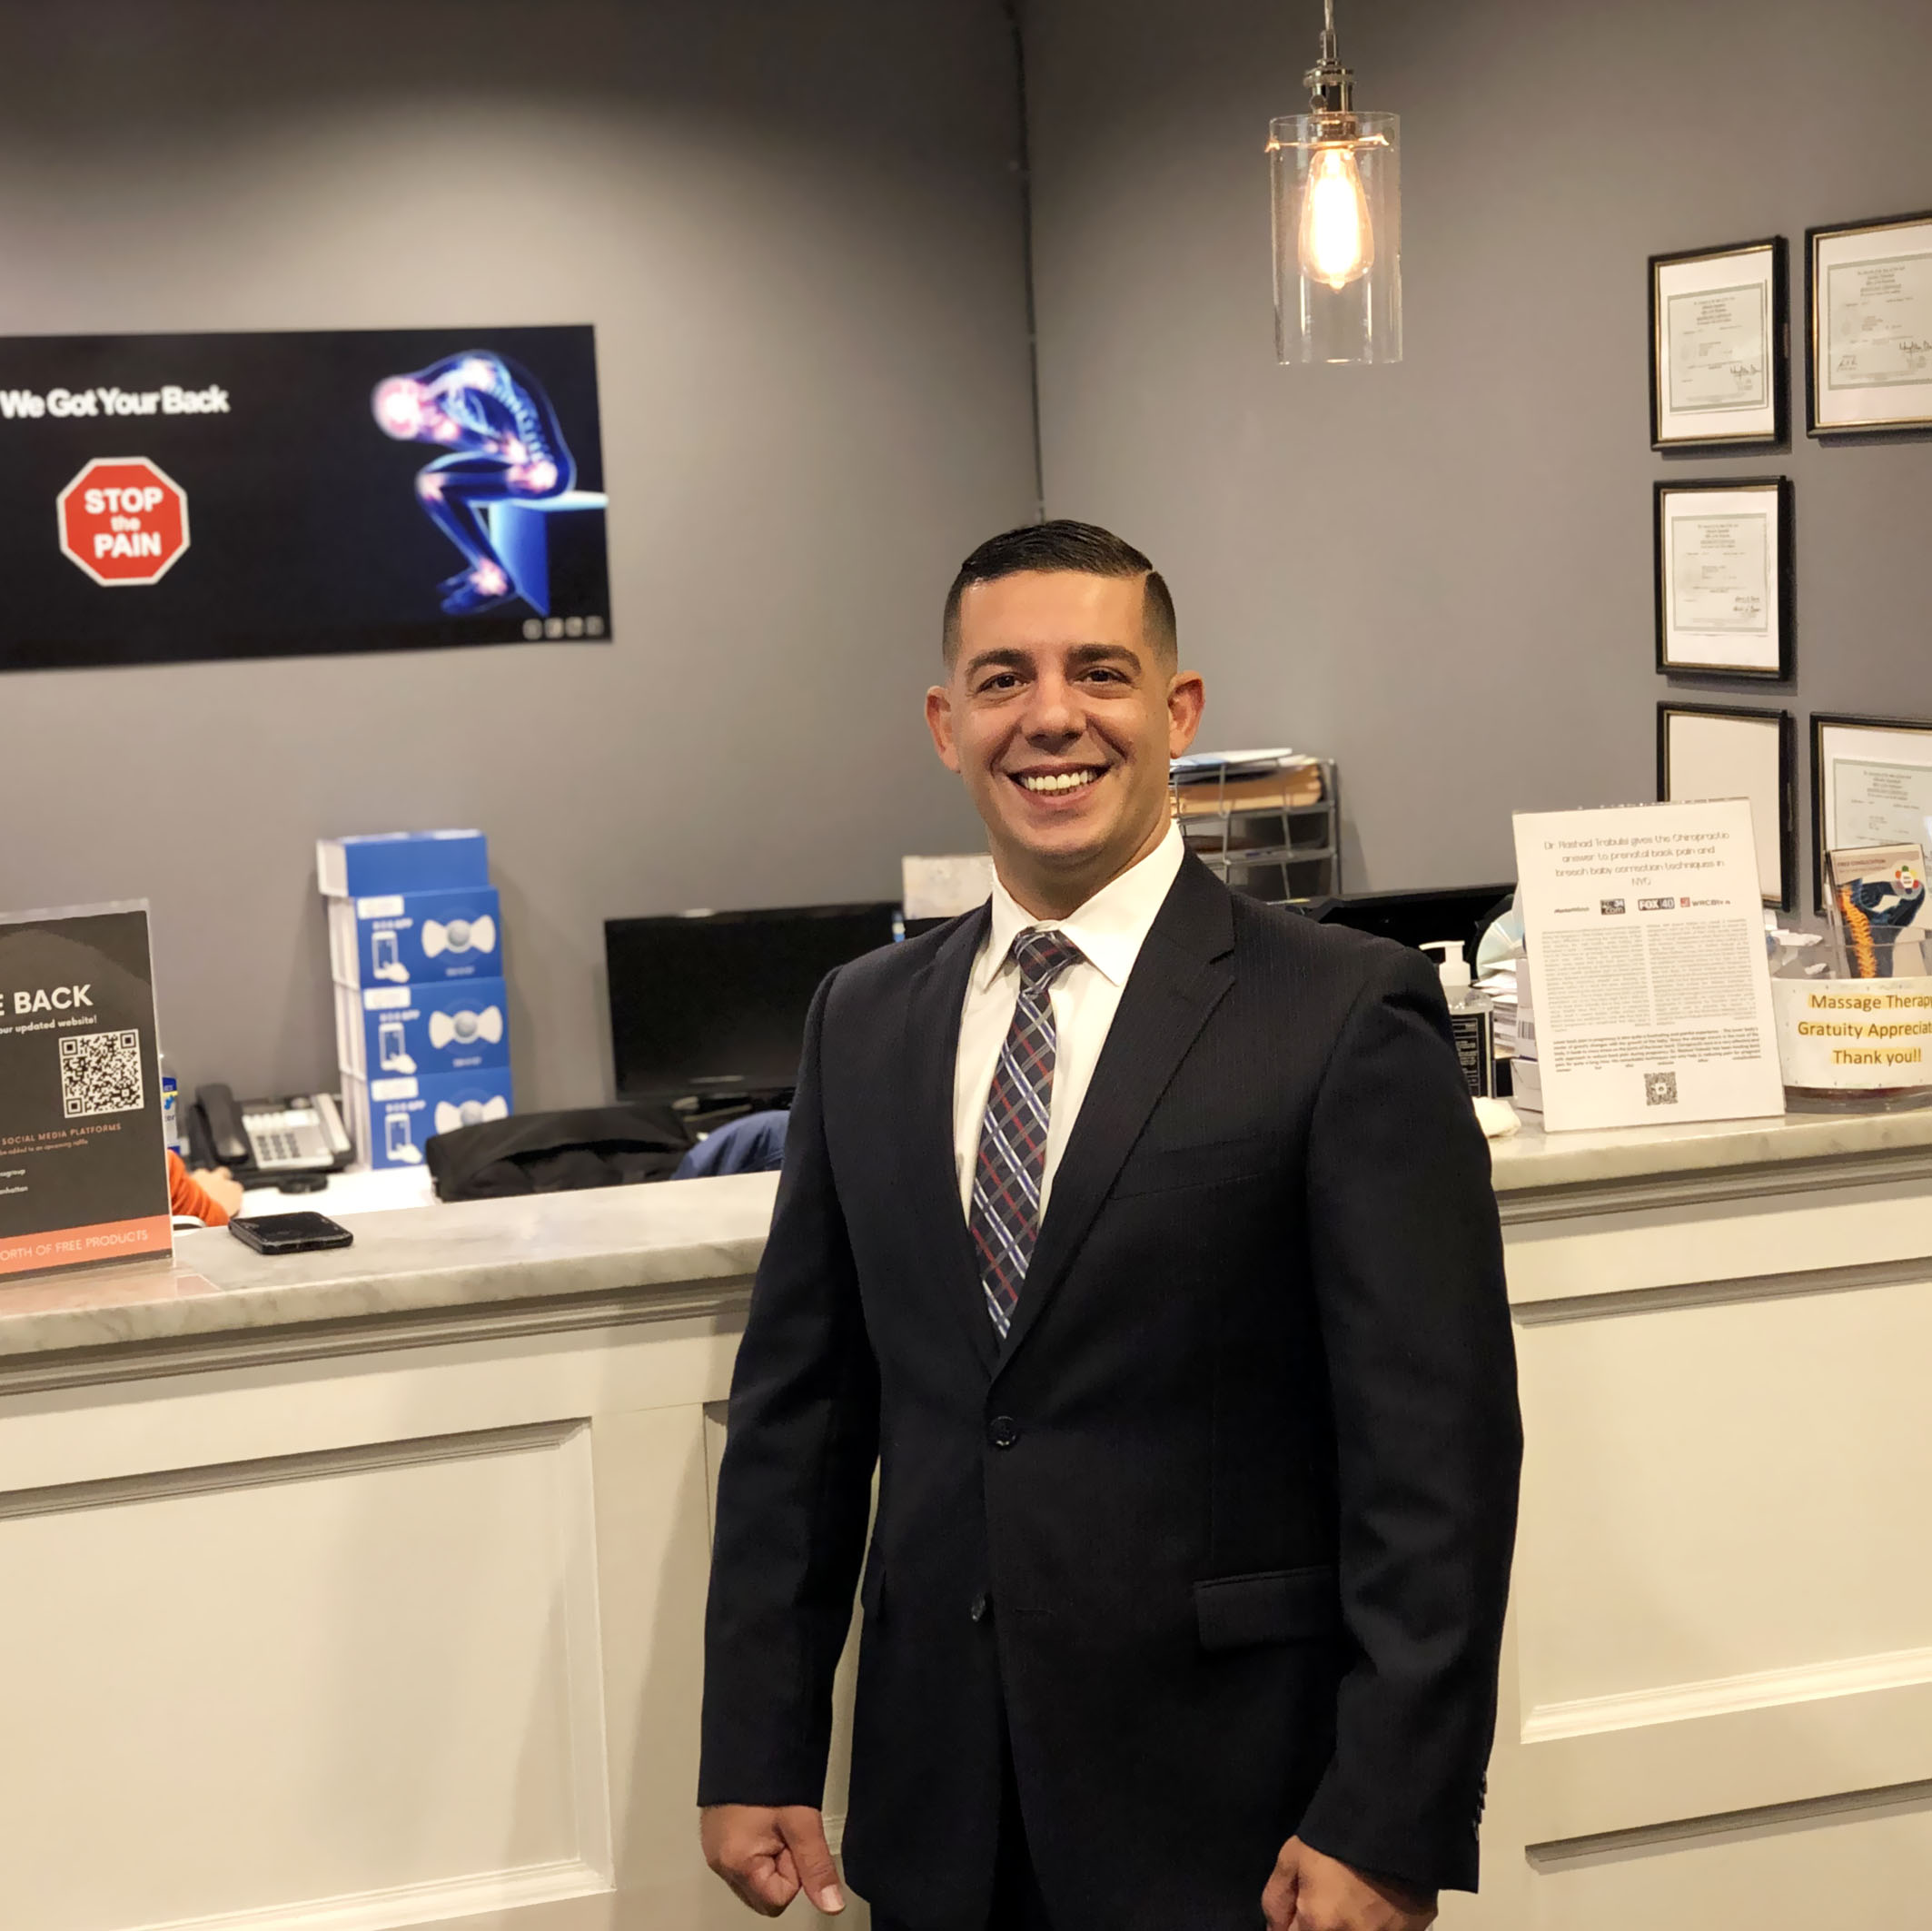 Chiropractic | Treatment, Examination & X-ray or MRI review by Dr. Rashad Trabulsi | Only for New patient